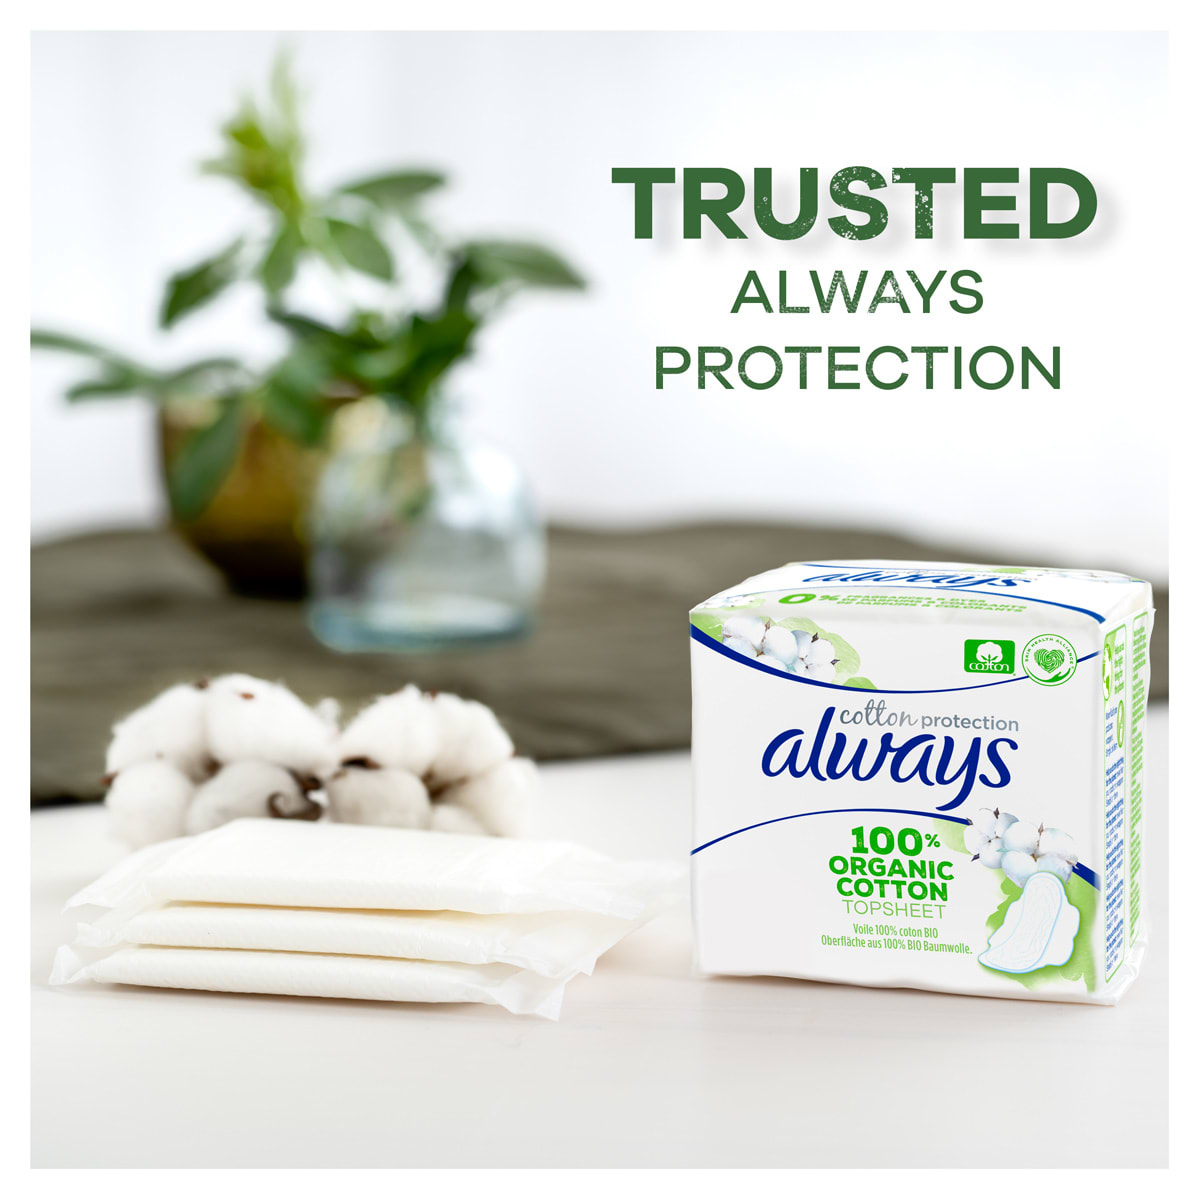 Trusted always protection